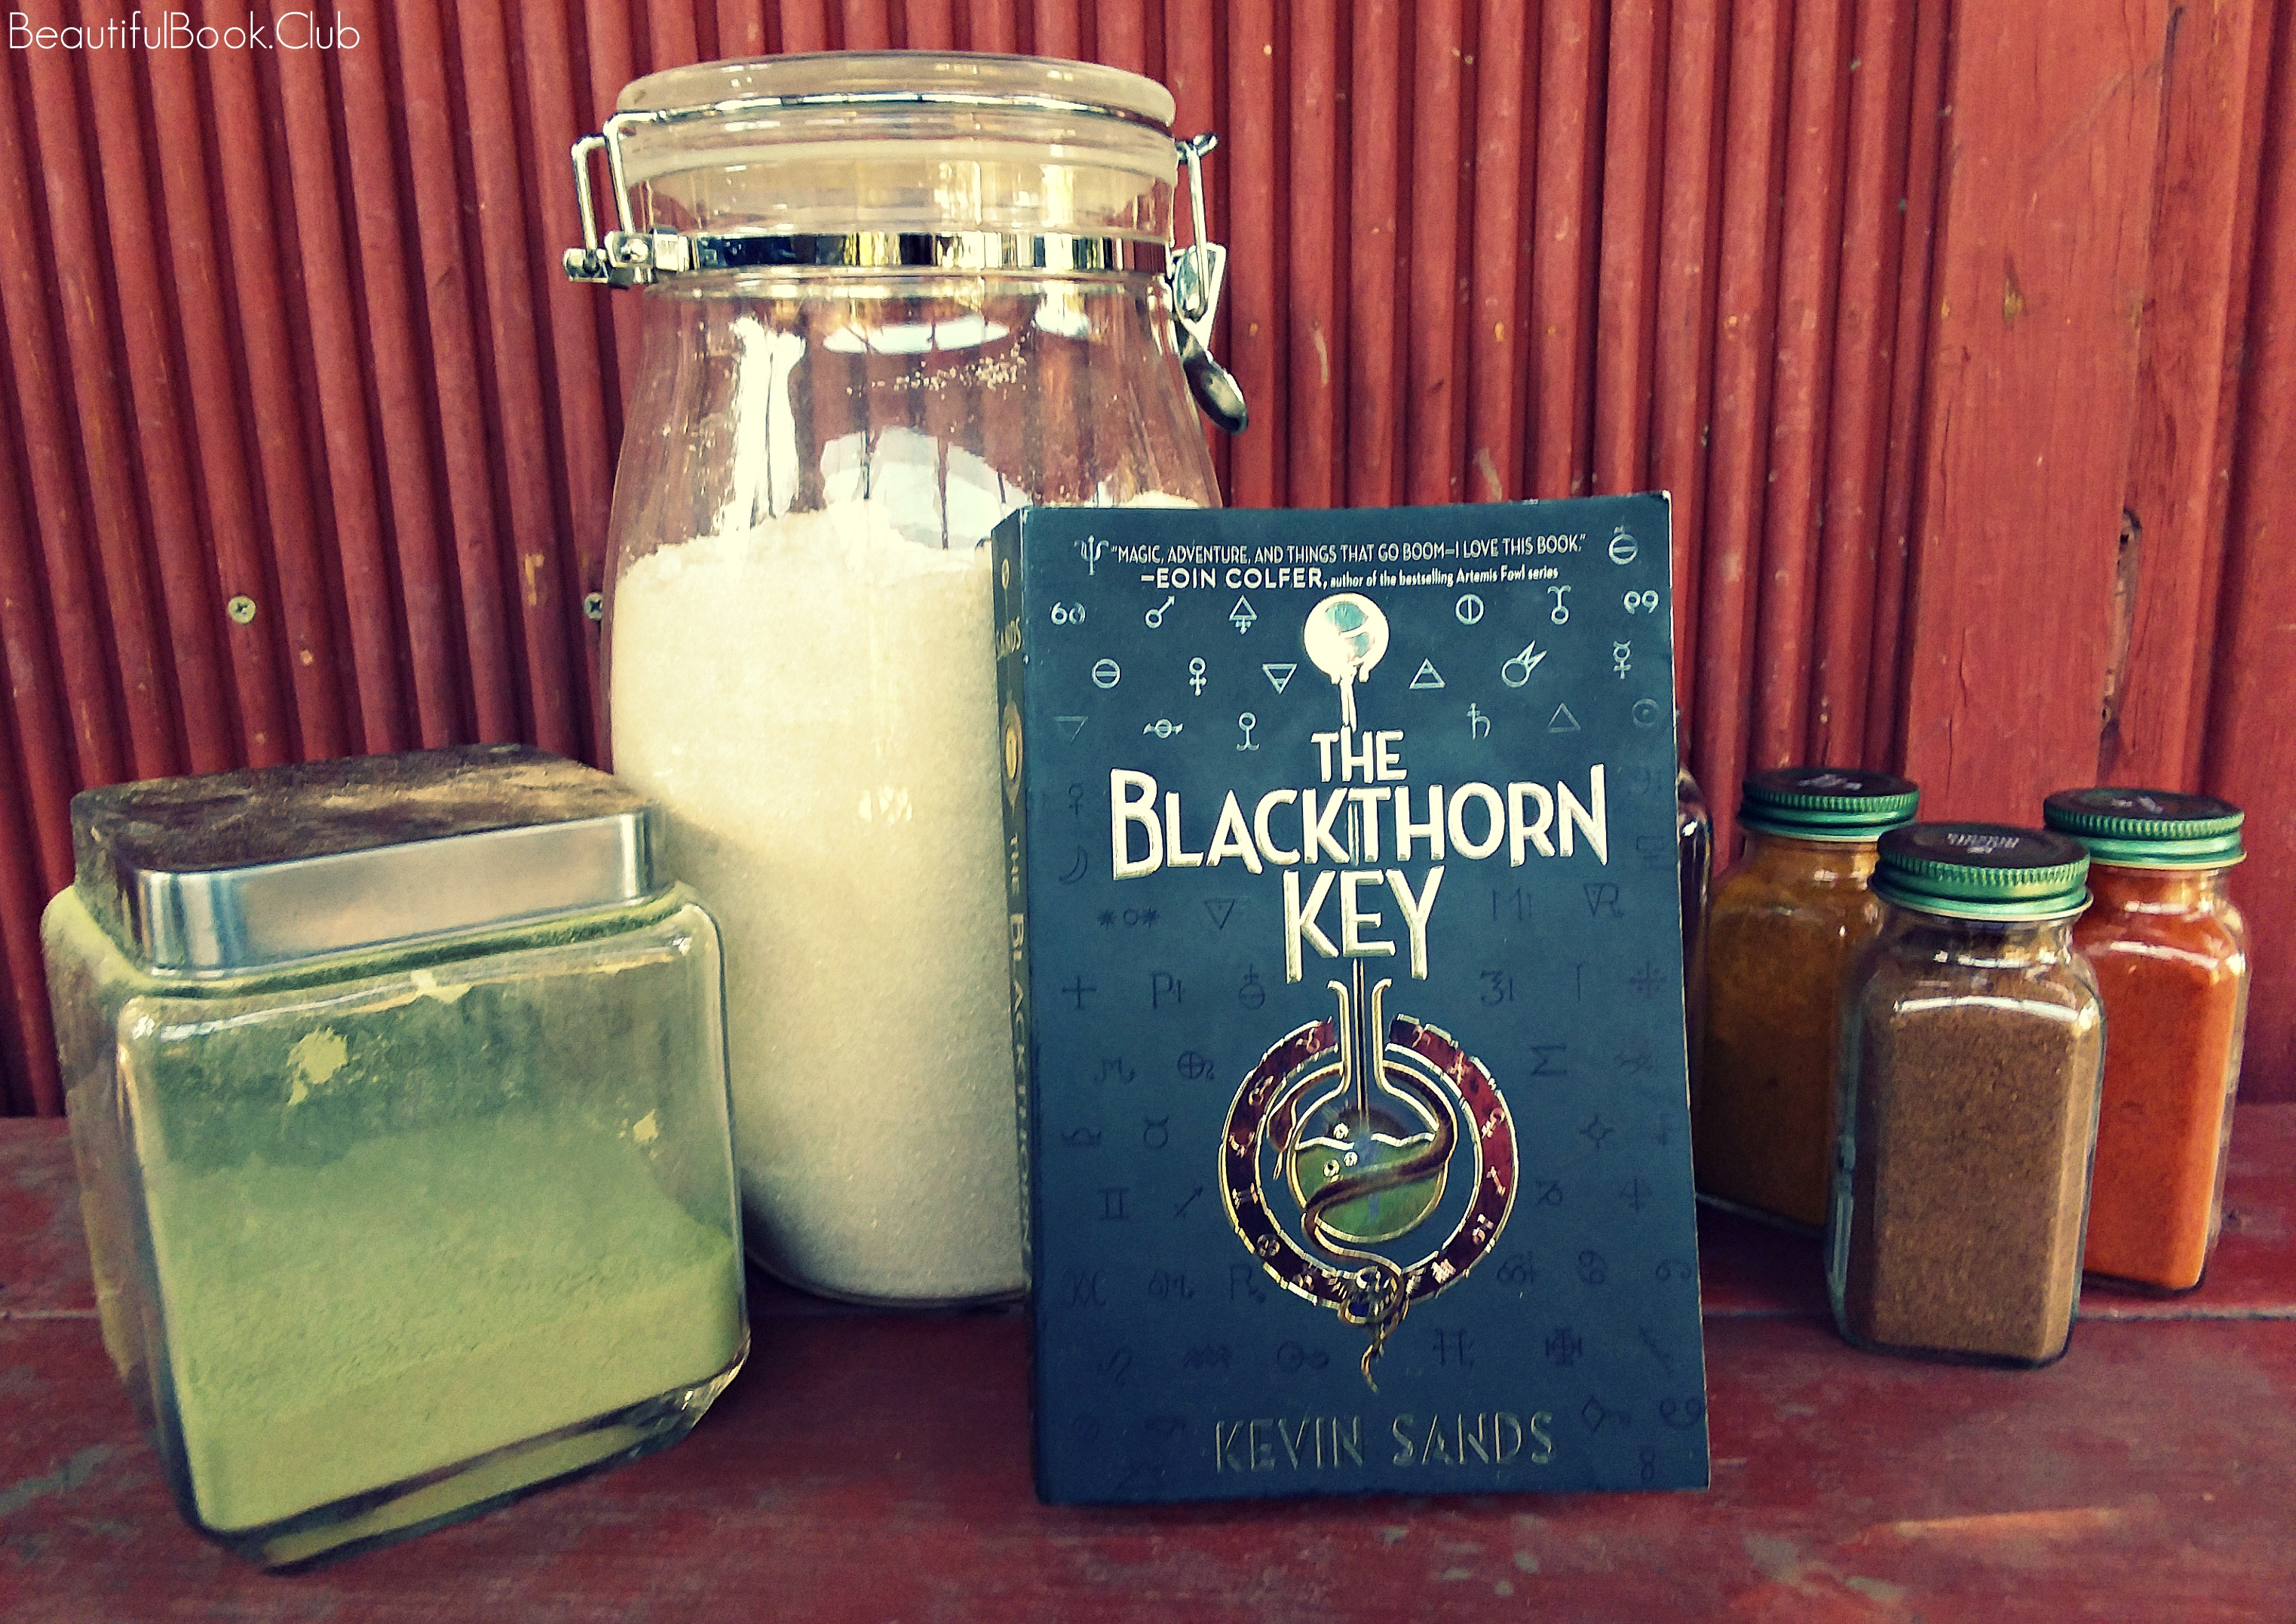 The Blackthorn Key by Kevin Sands front cover with jars